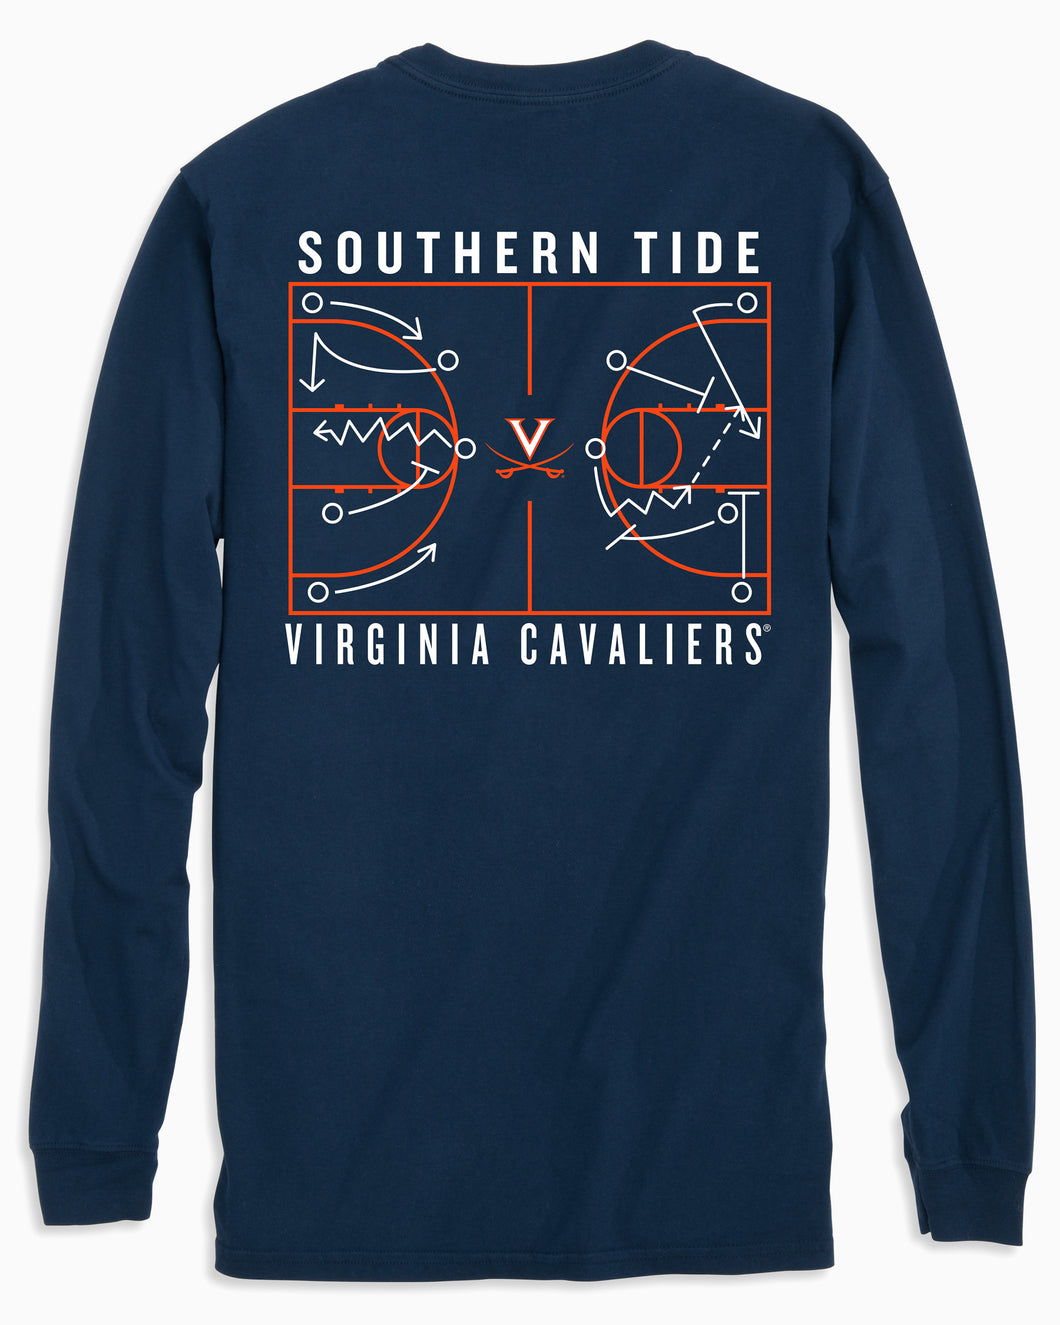 Southern Tide UVA Cavaliers Long Sleeve Basketball T-Shirt